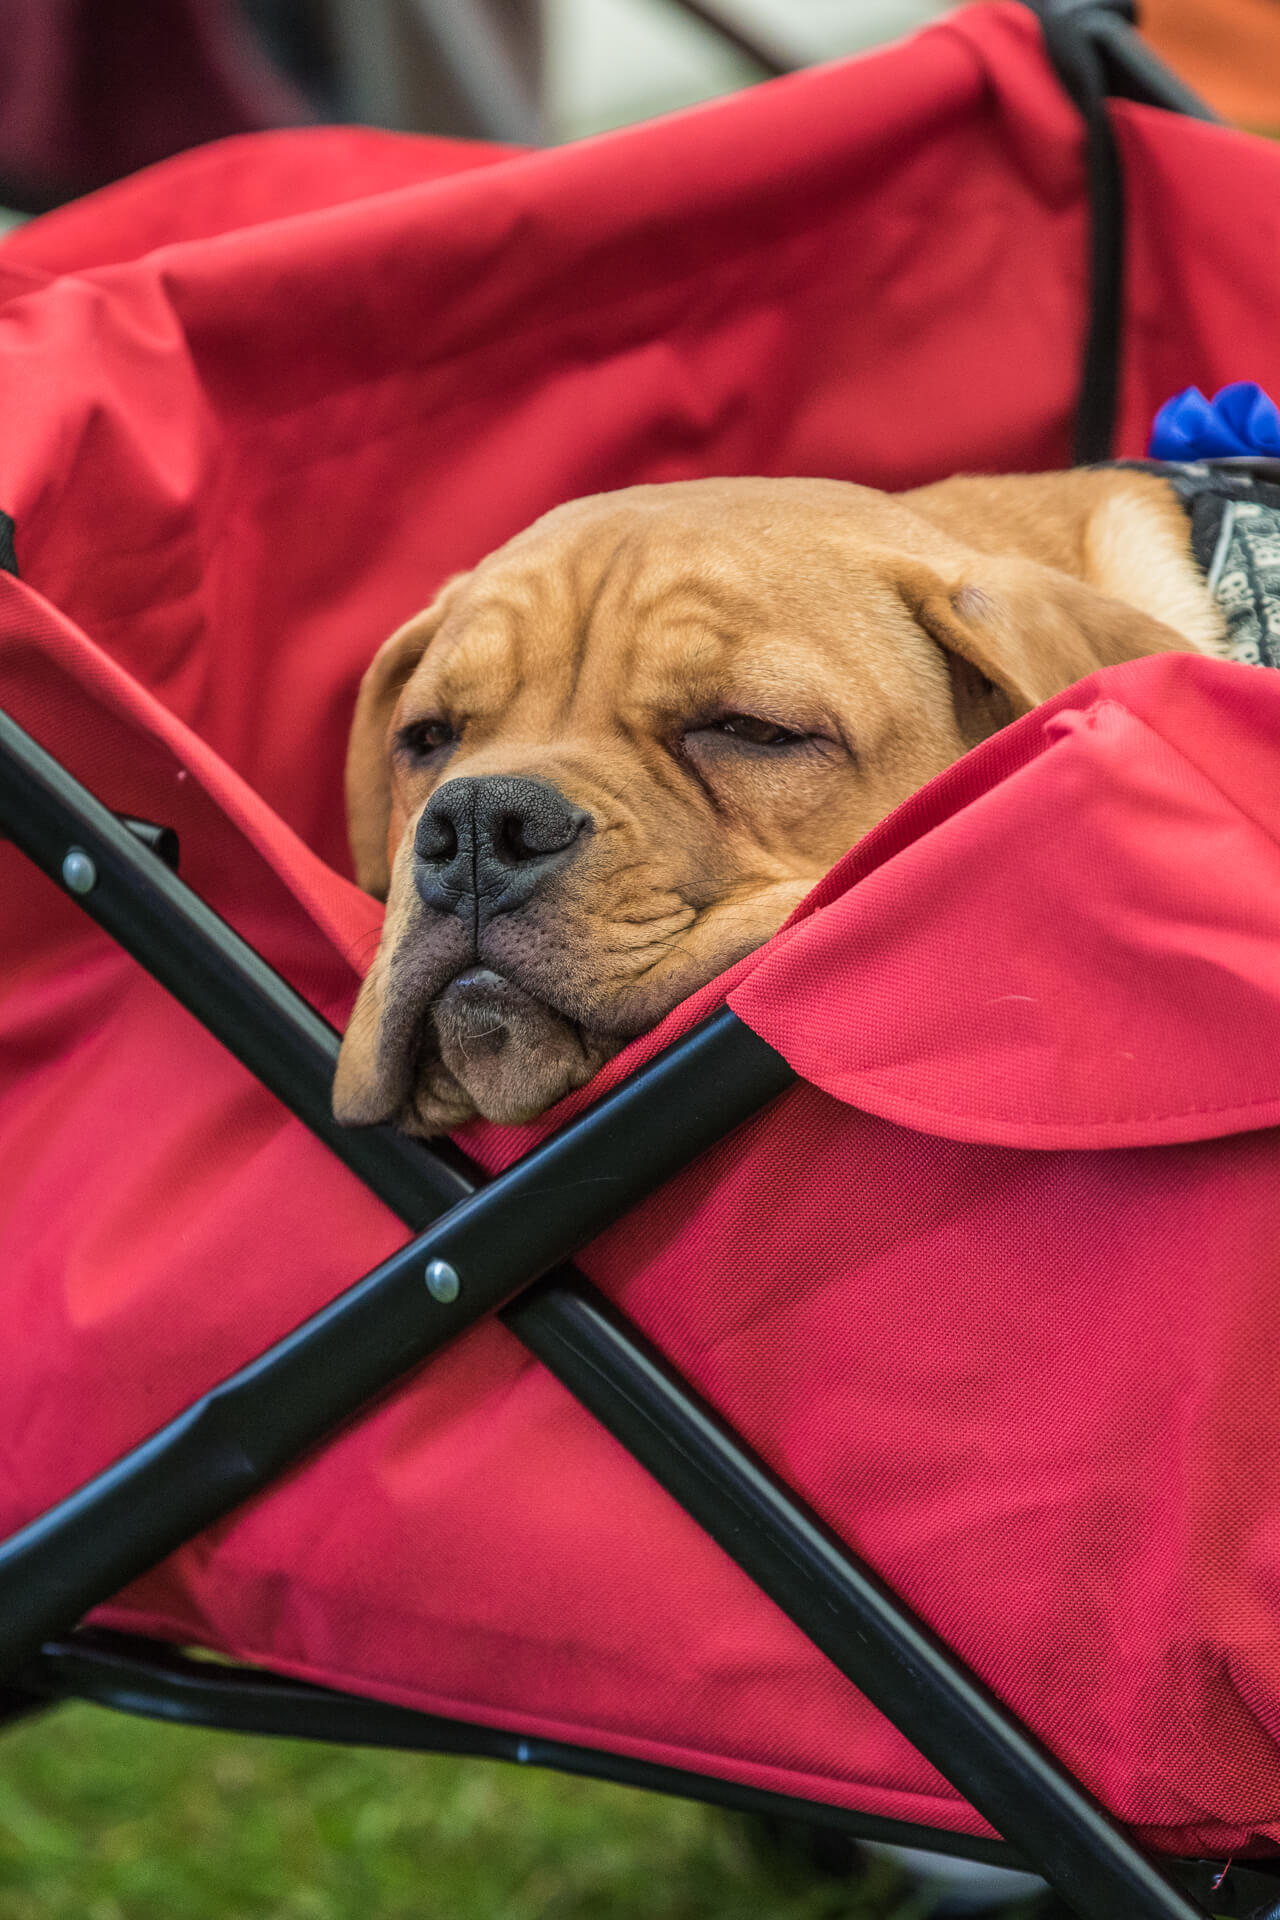 A Mastiff type puppy lays asleep in a festival type trolley. He appears to be completely oblivious to his surroundings and all the noise.